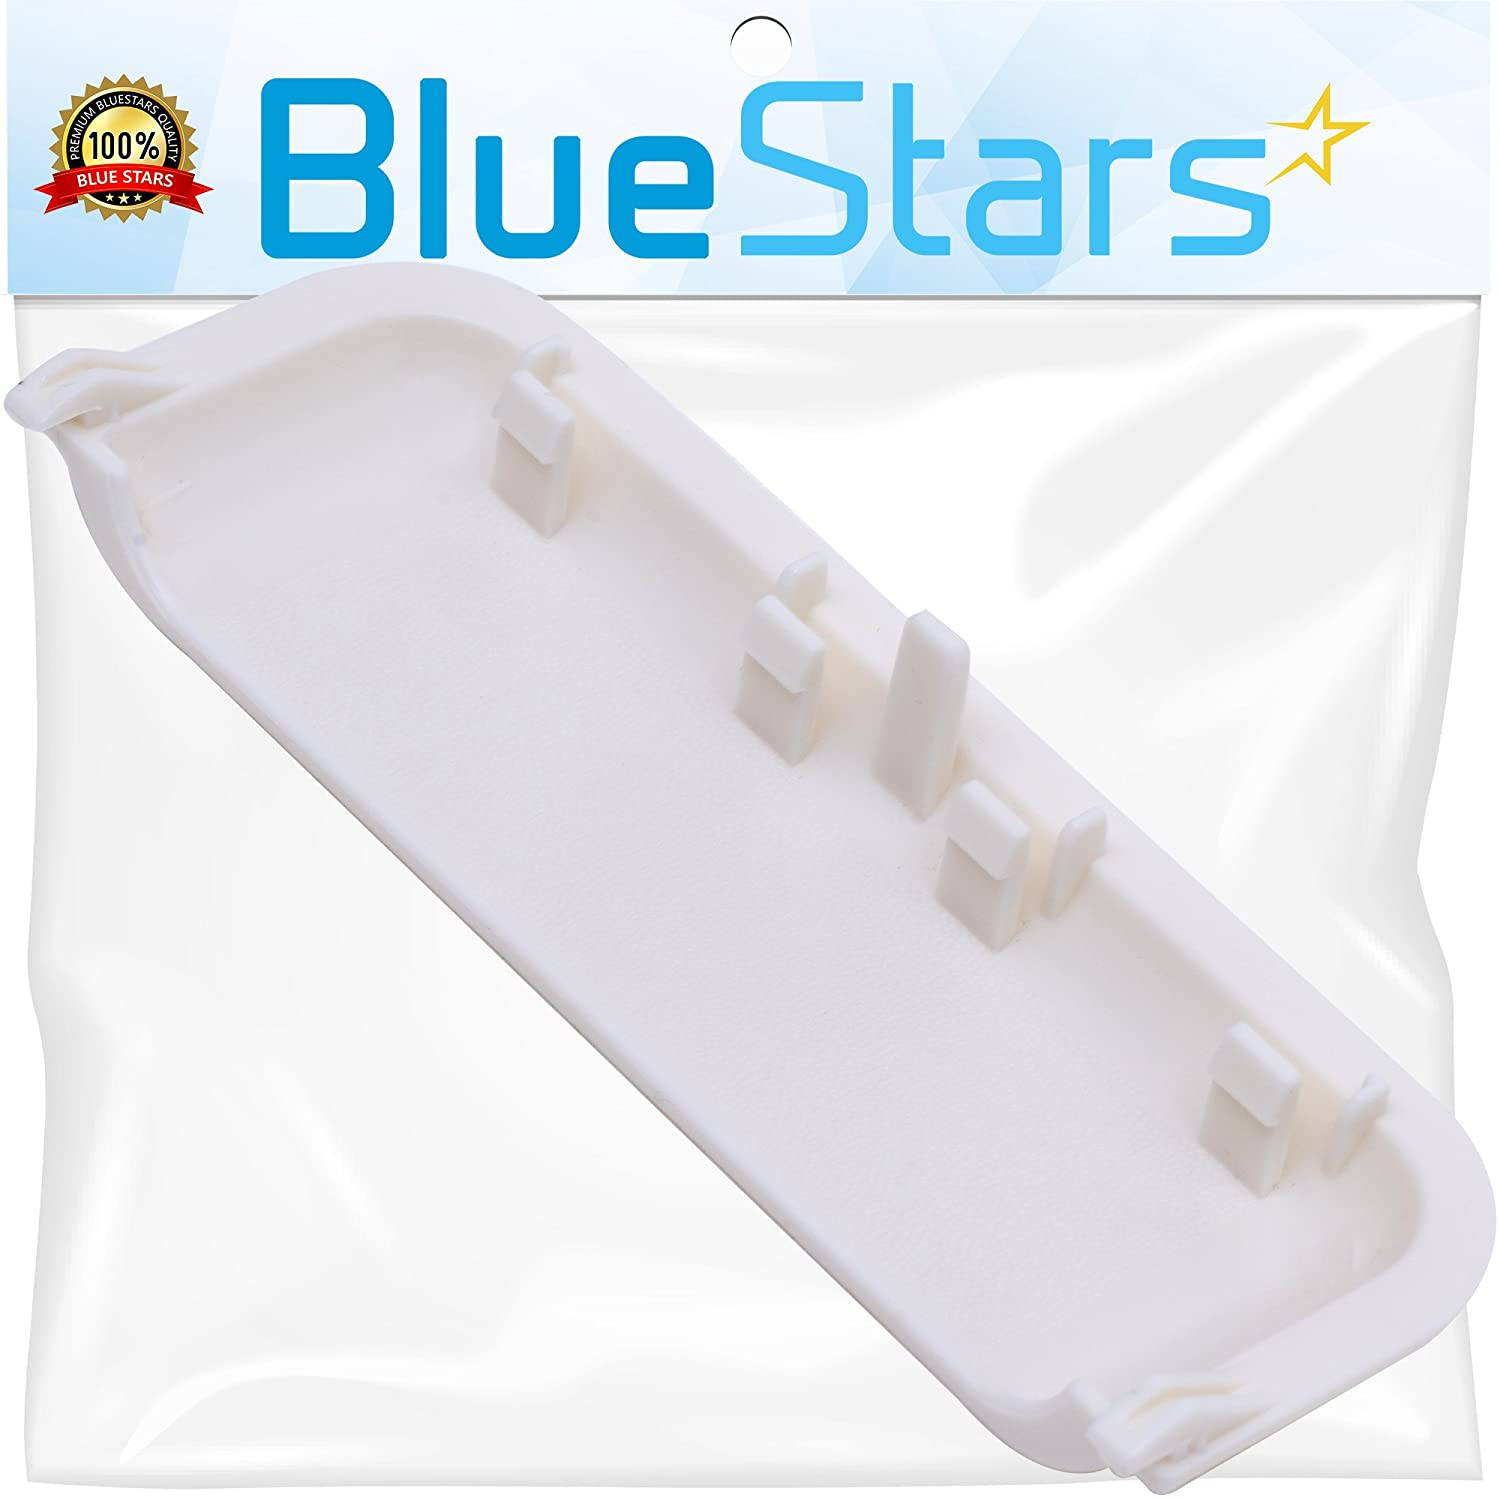 Ultra Durable W10861225 Dryer Door Handle Replacement by Blue Stars - Exact Fit for Whirlpool & Kenmore Dryer - Replaces AP5999398 PS11731583 W10714516